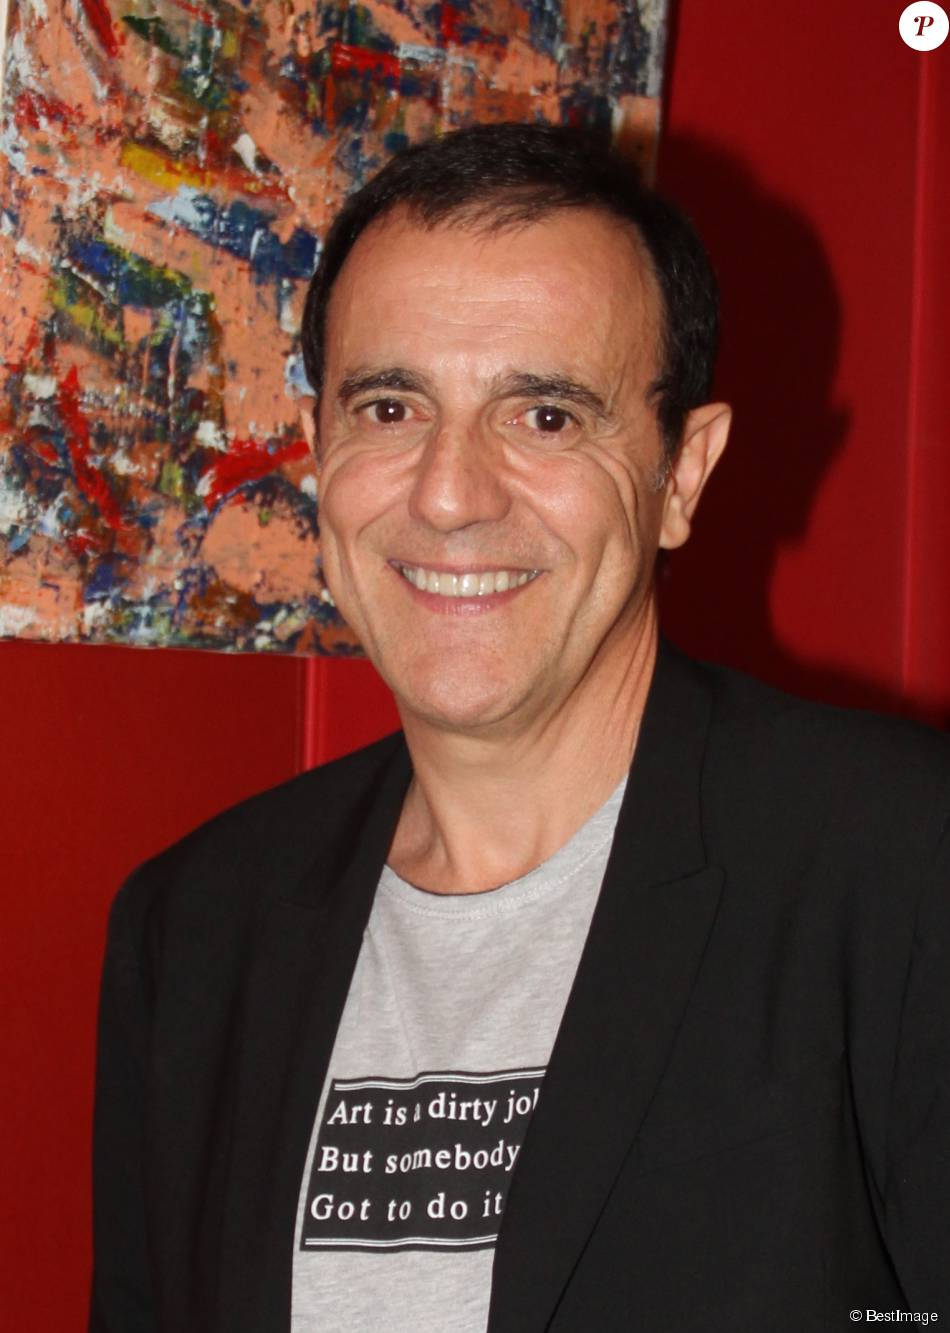 Thierry beccaro son enfance difficile son p re a point son fusil sur sa m re purepeople - Thierry beccaro pauline beccaro ...